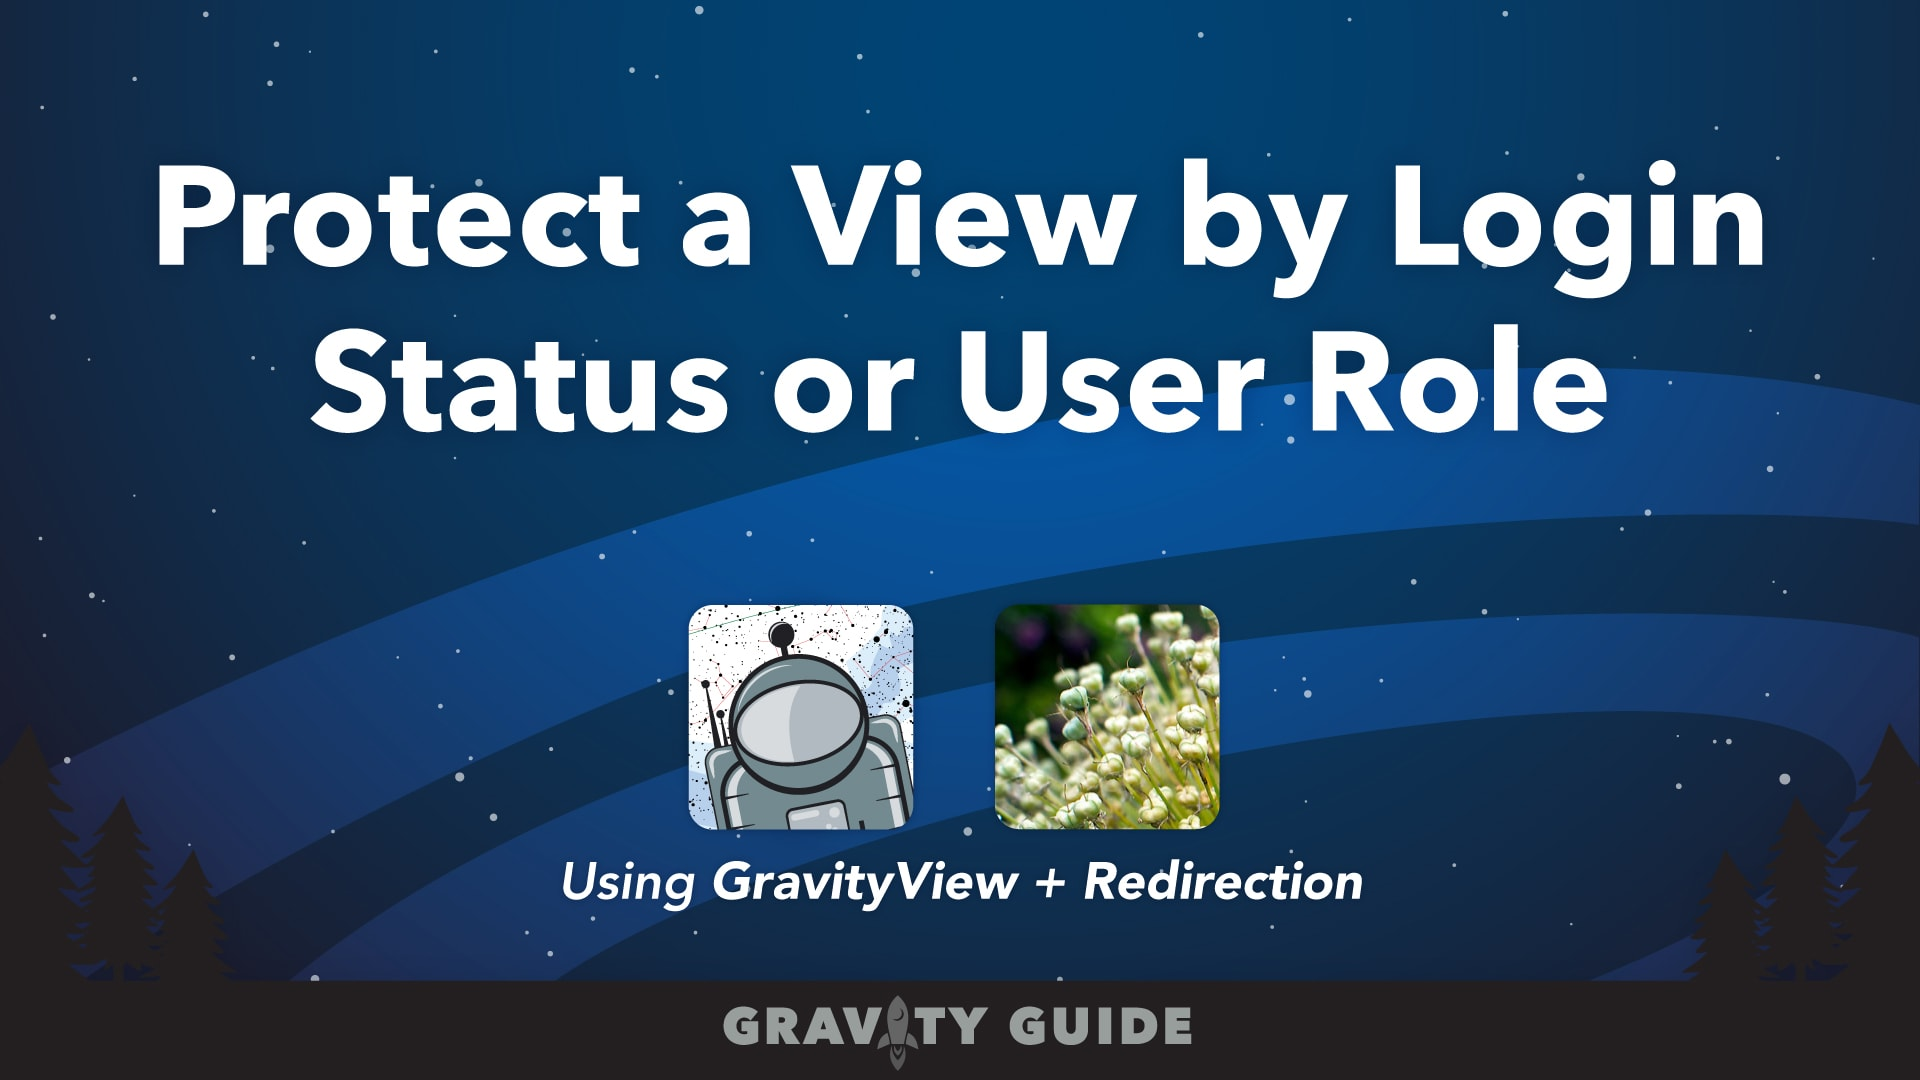 Protect a View by Login Status or User Role